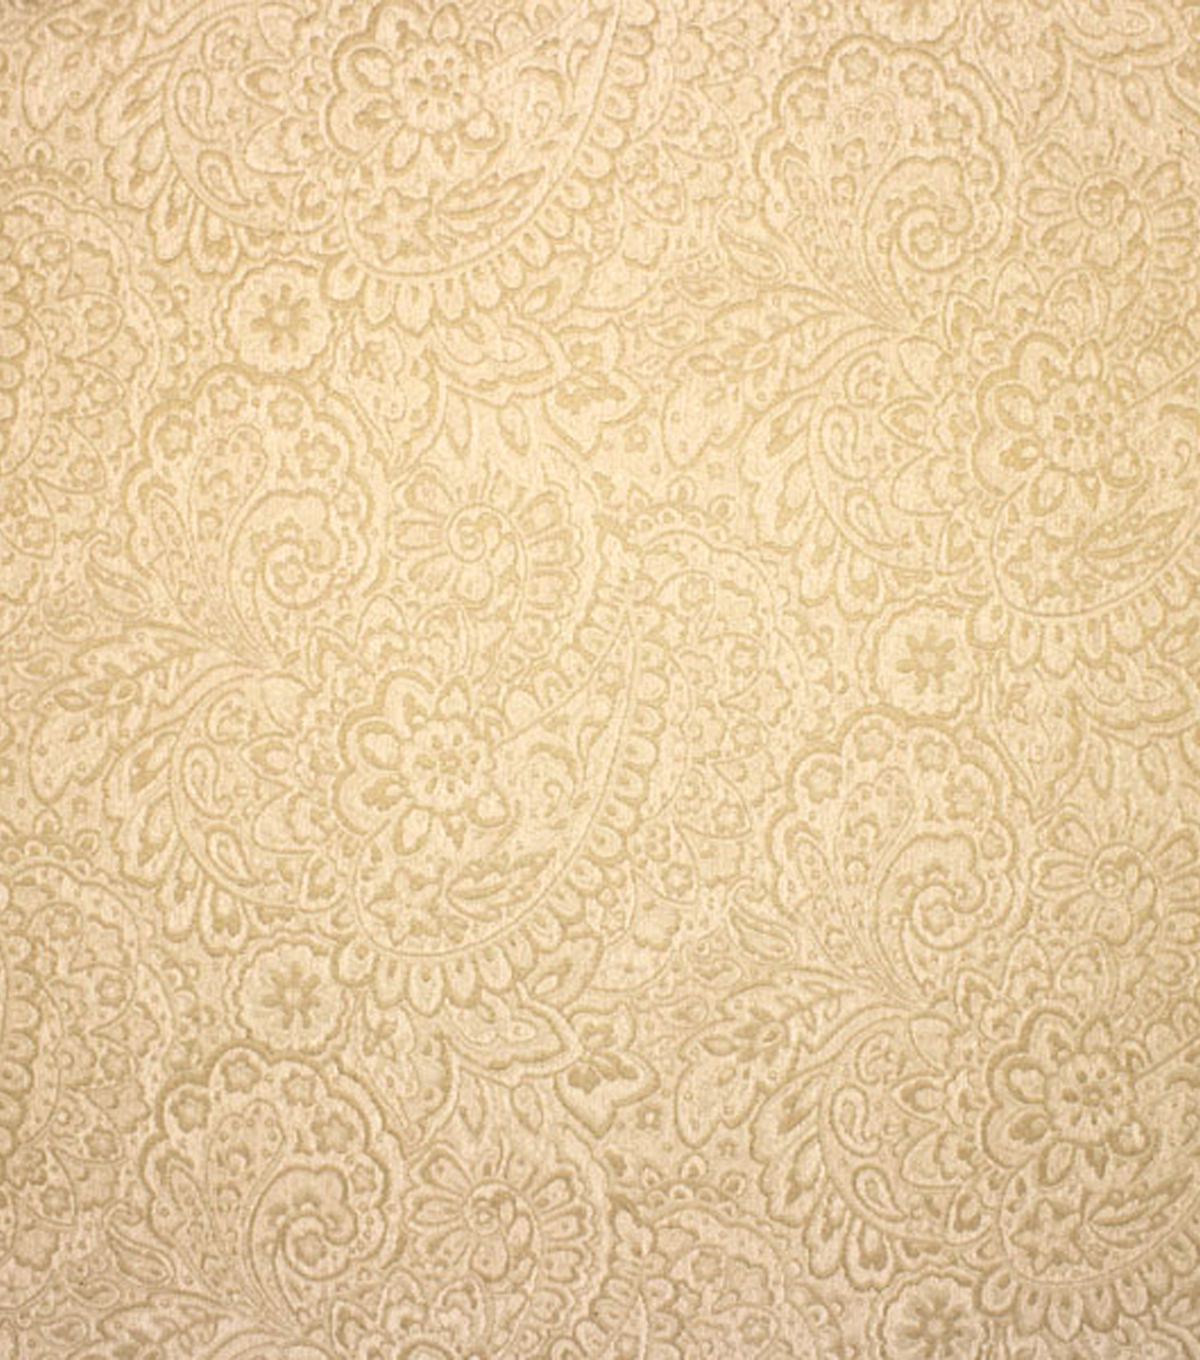 Home Decor 8\u0022x8\u0022 Fabric Swatch-Barrow  M6664-5811 Ivory